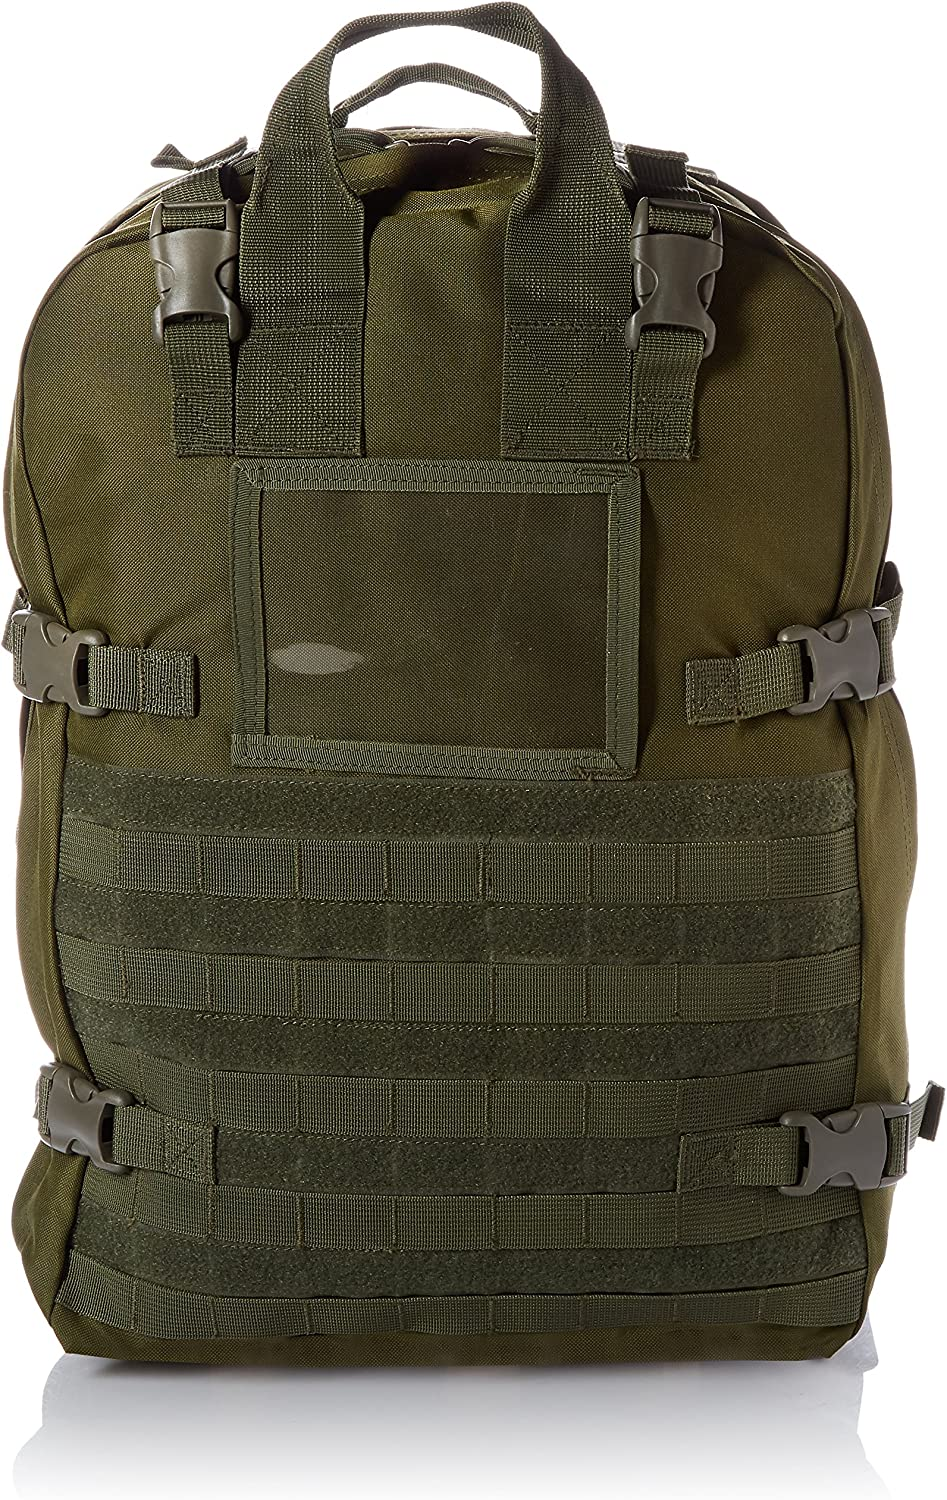 Stomp Medical Kit Fully Stocked First Aid Backpack